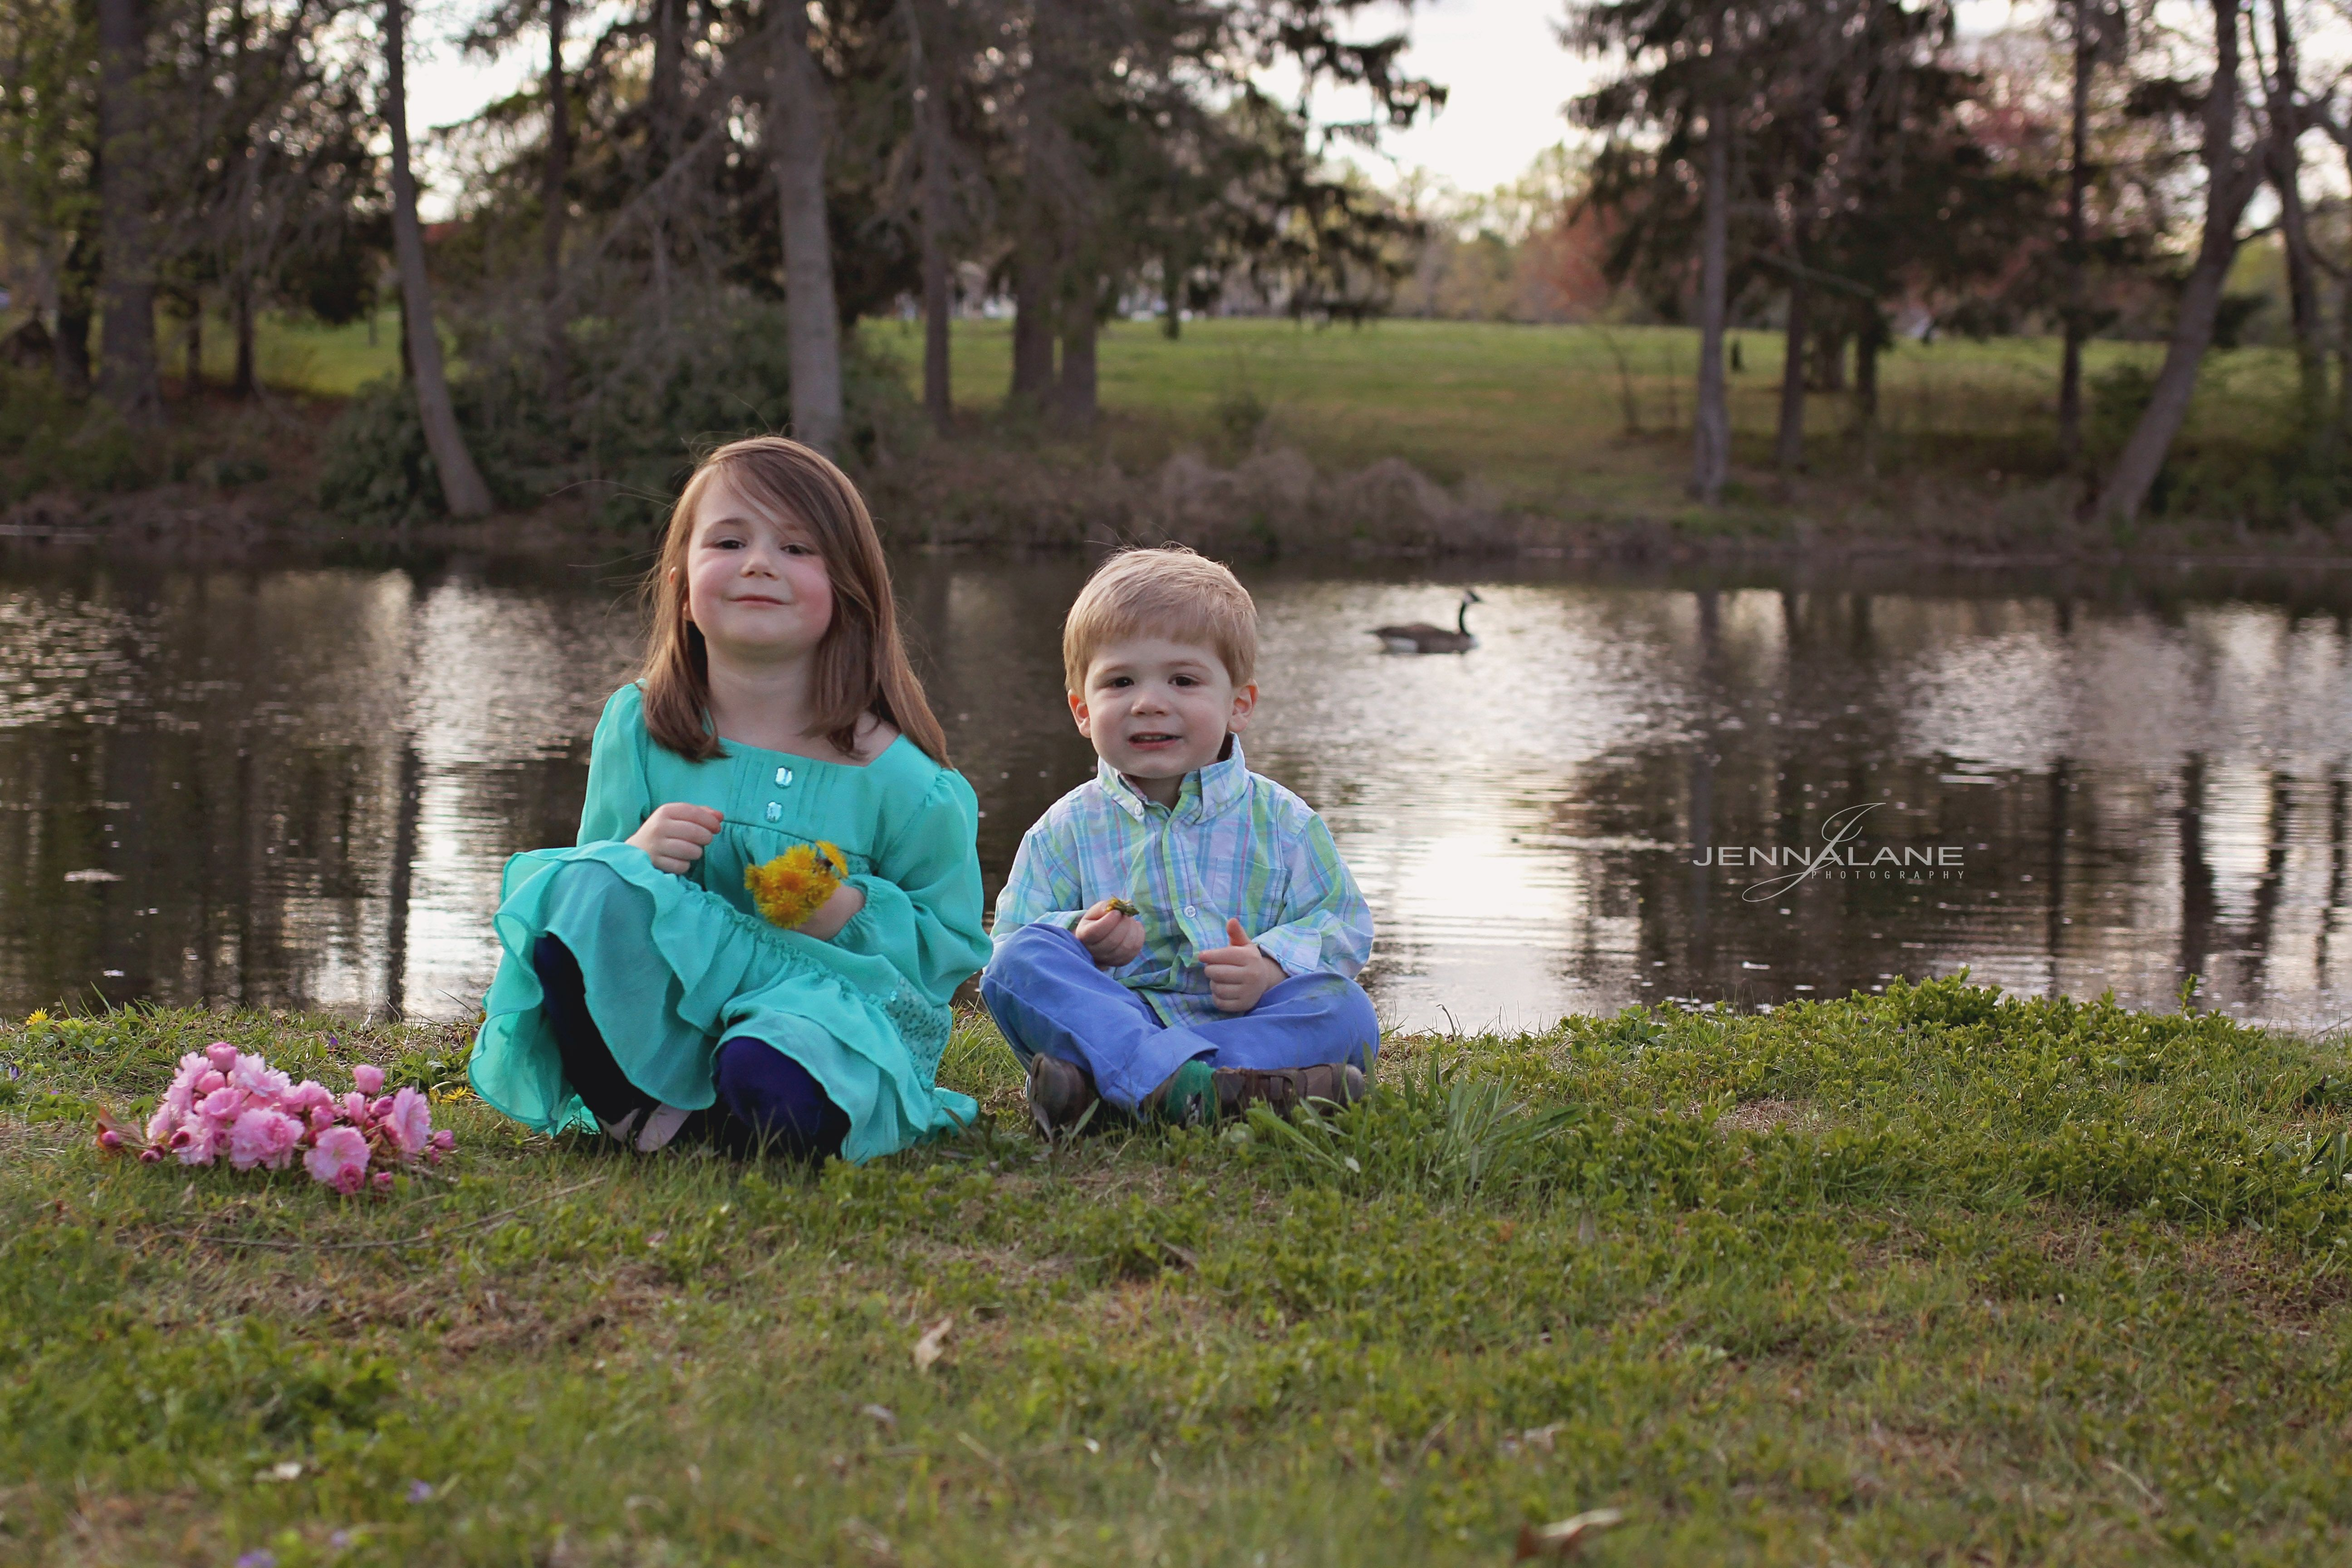 #childphotography #babies #goldenhour #siblings #brothersister